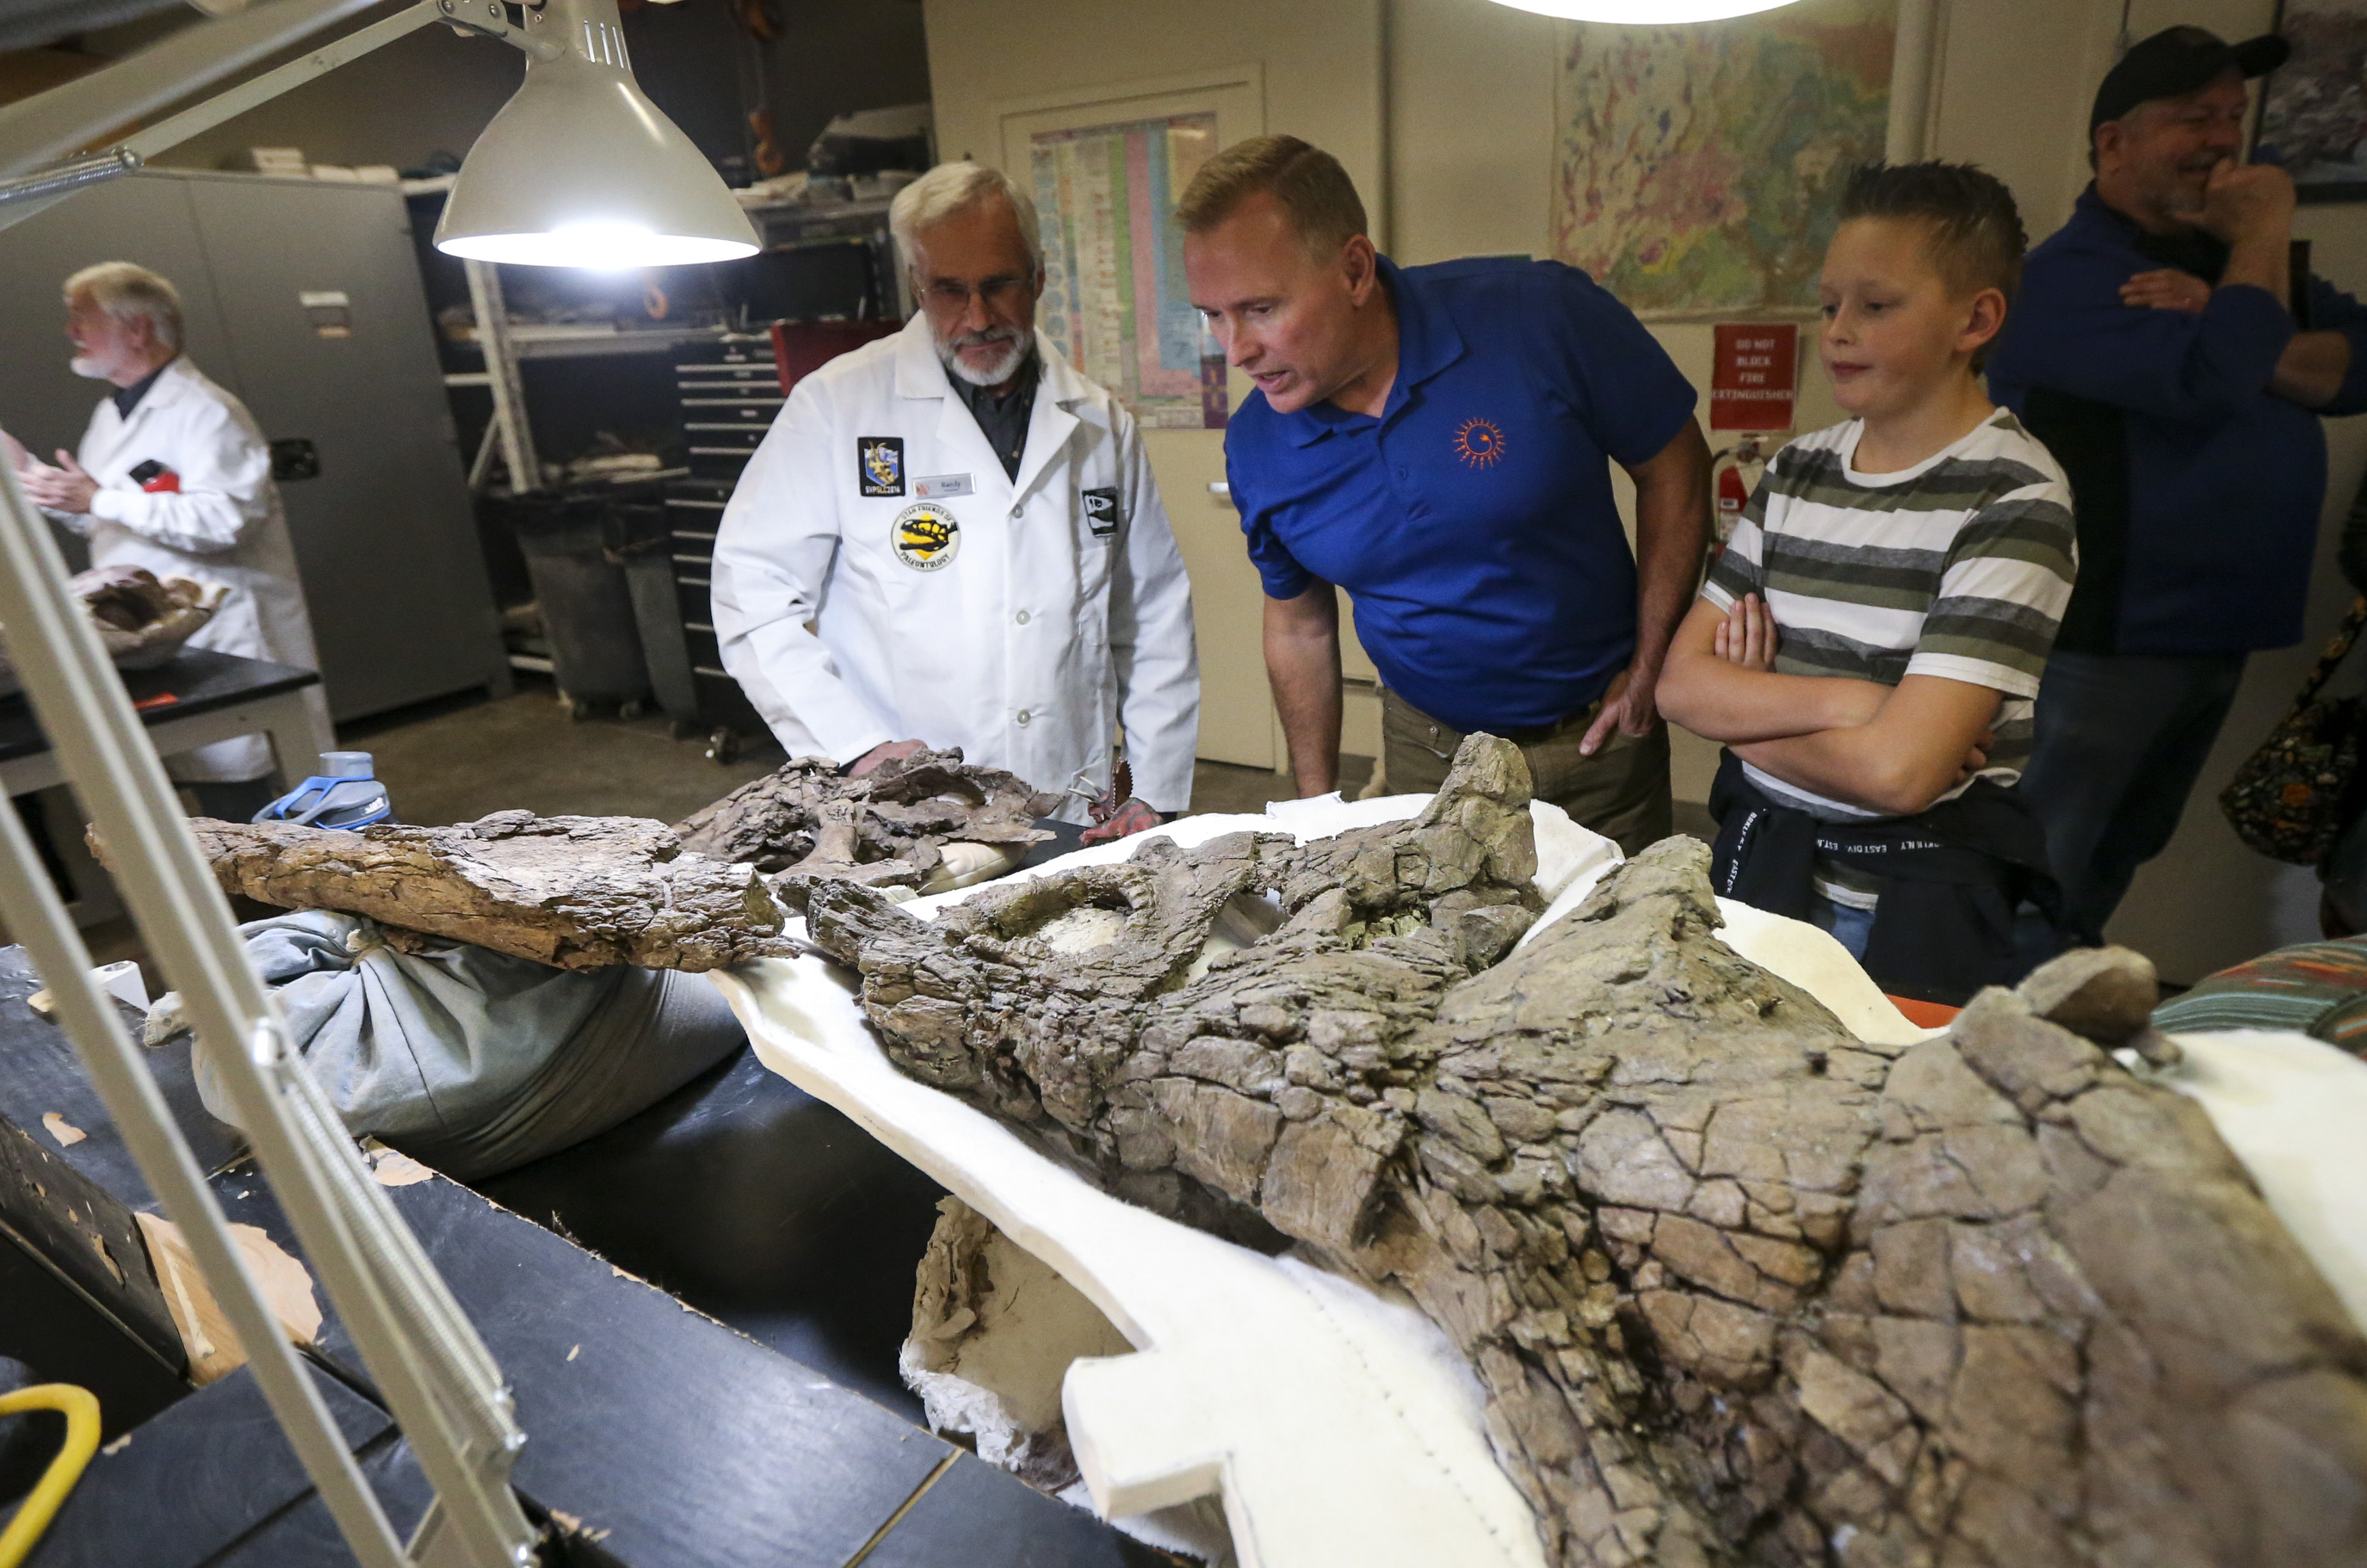 Dave Butterfield, center, and Roc McMains, 12, inspect the fossil of a pentaceratops that was discovered and excavated in southern Utah by volunteer Randy Johnson, left, during the annual behind the scenes event at the Natural History Museum of Utah in Salt Lake City on Saturday, Nov. 16, 2019. During the event, the public is invited into the back rooms the museum to explore objects that aren't often on display and talk to employees and volunteers who work with the artifacts on a regular basis.